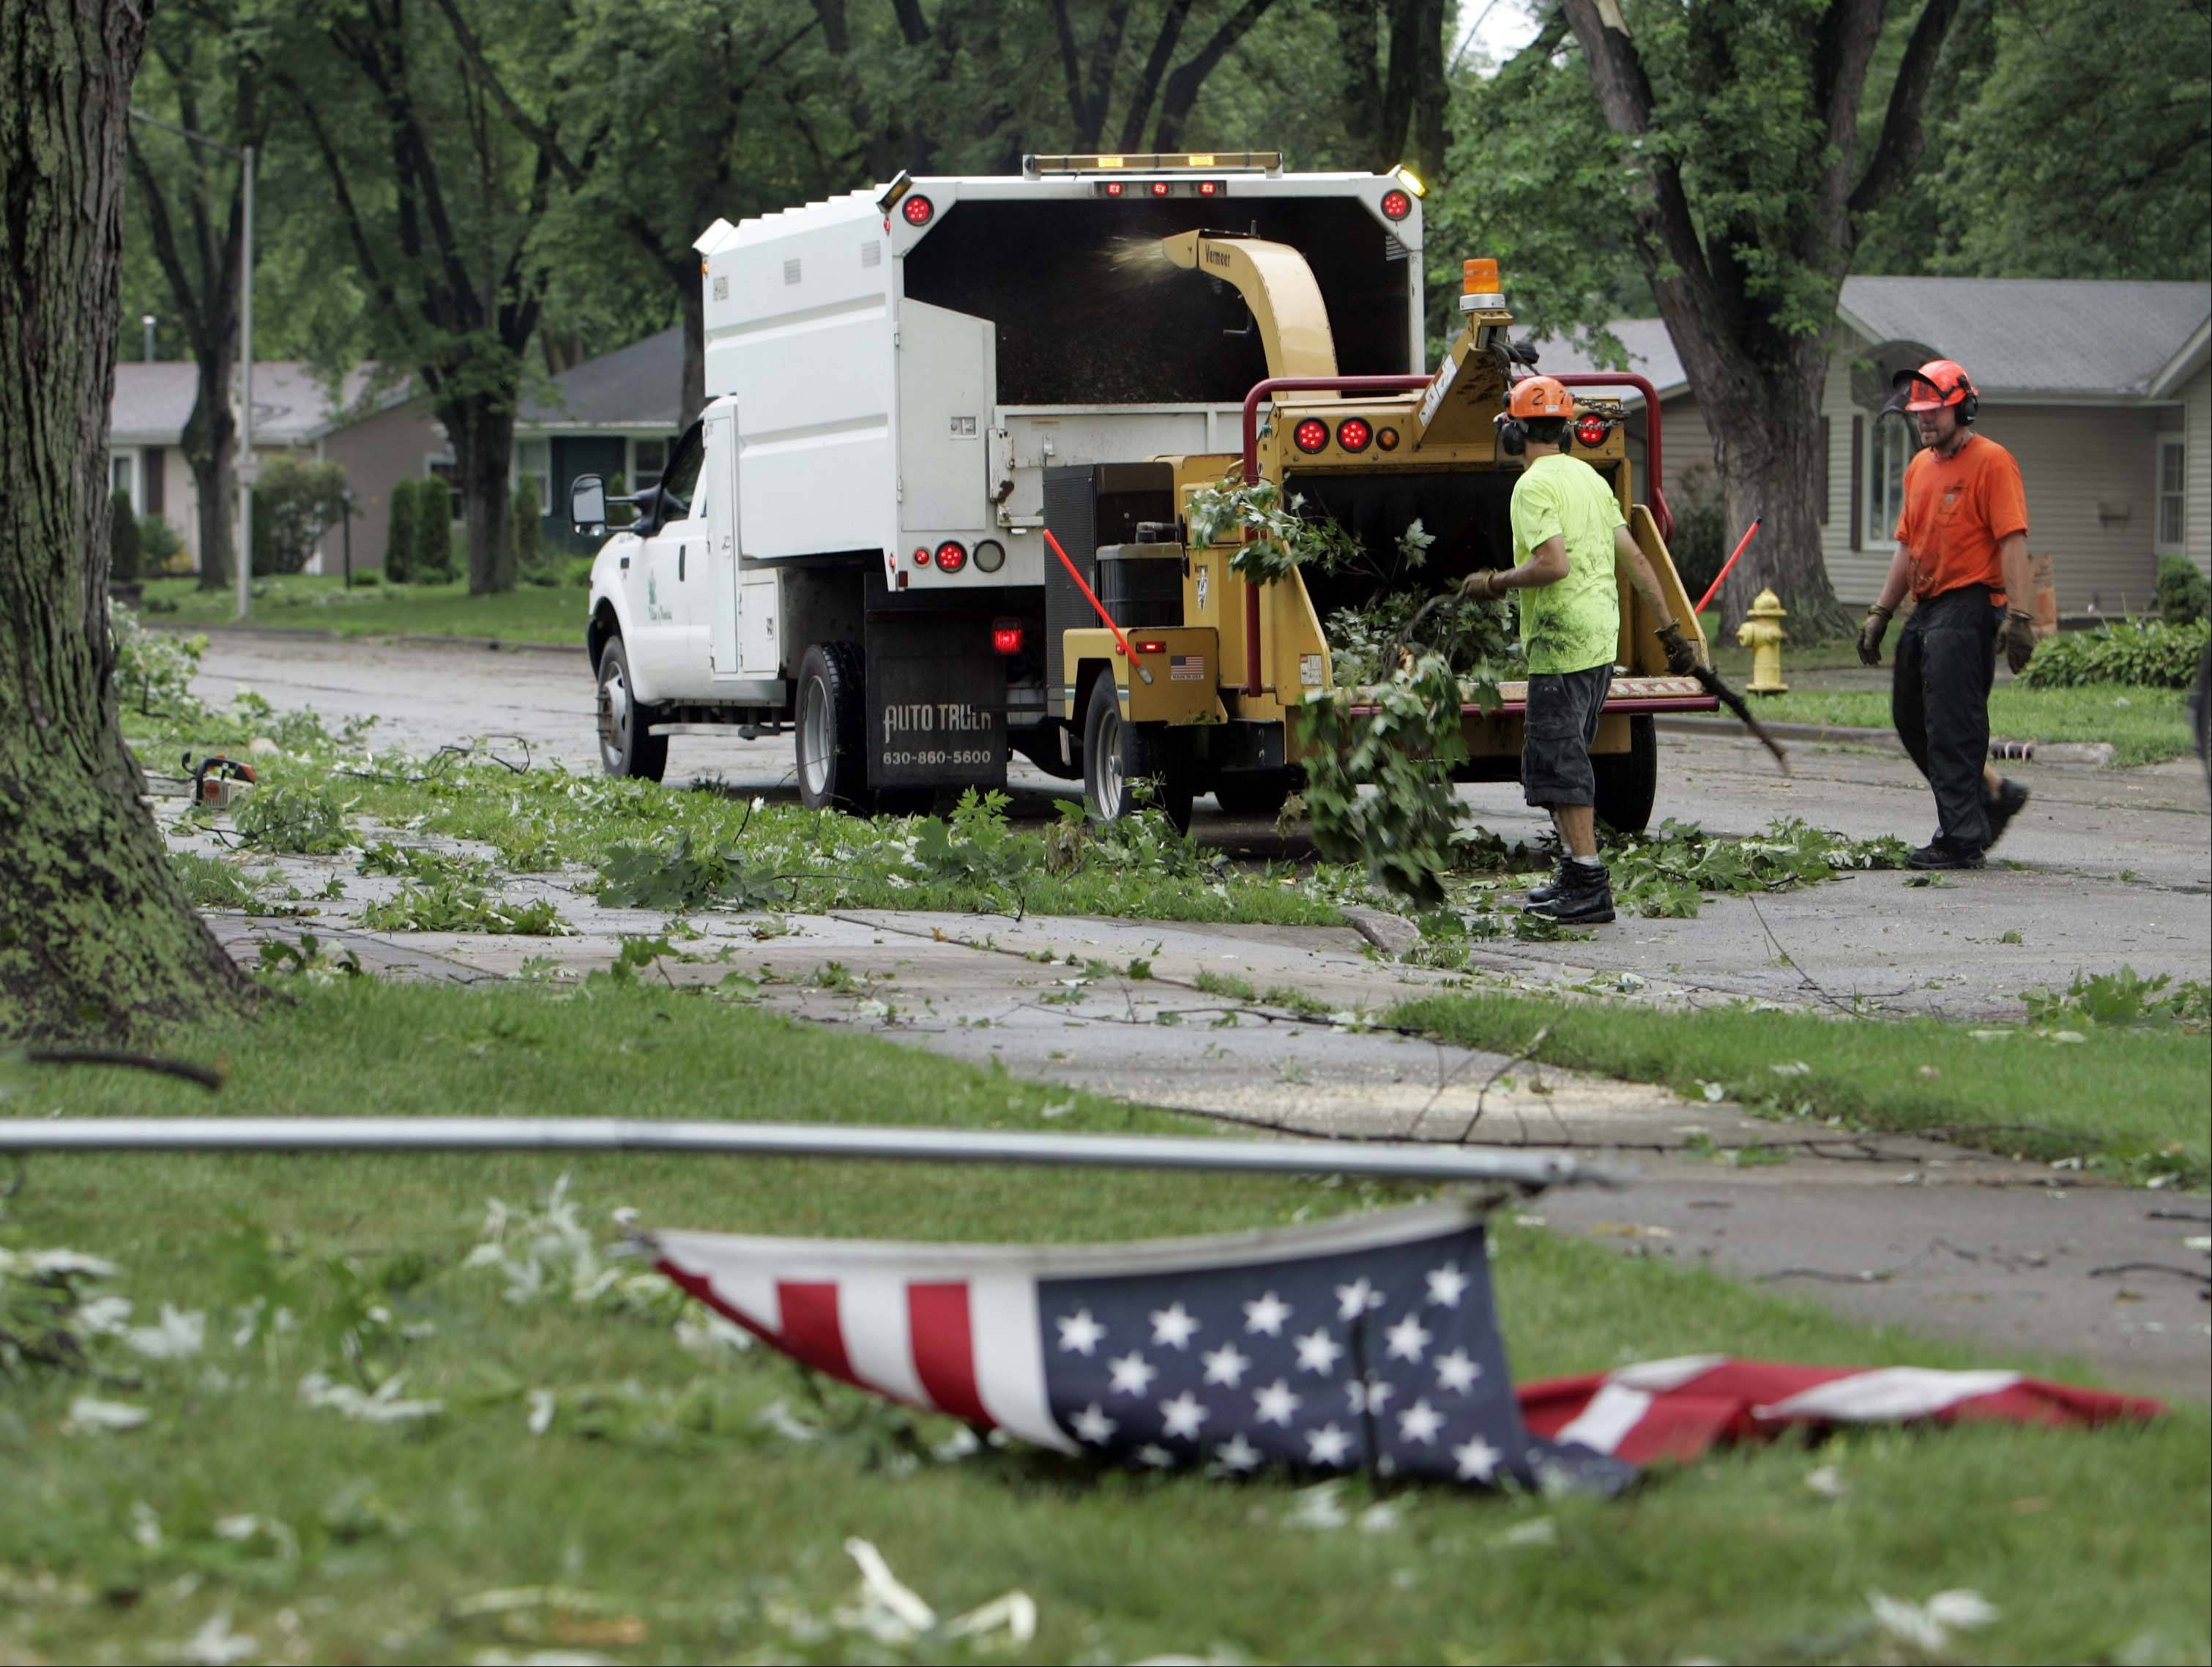 Mitch Szczepaniak, right, and Ryan Albright, from the Village of Woodridge work to clear downed trees along Thunderbird Trail in Carol Stream Thursday.